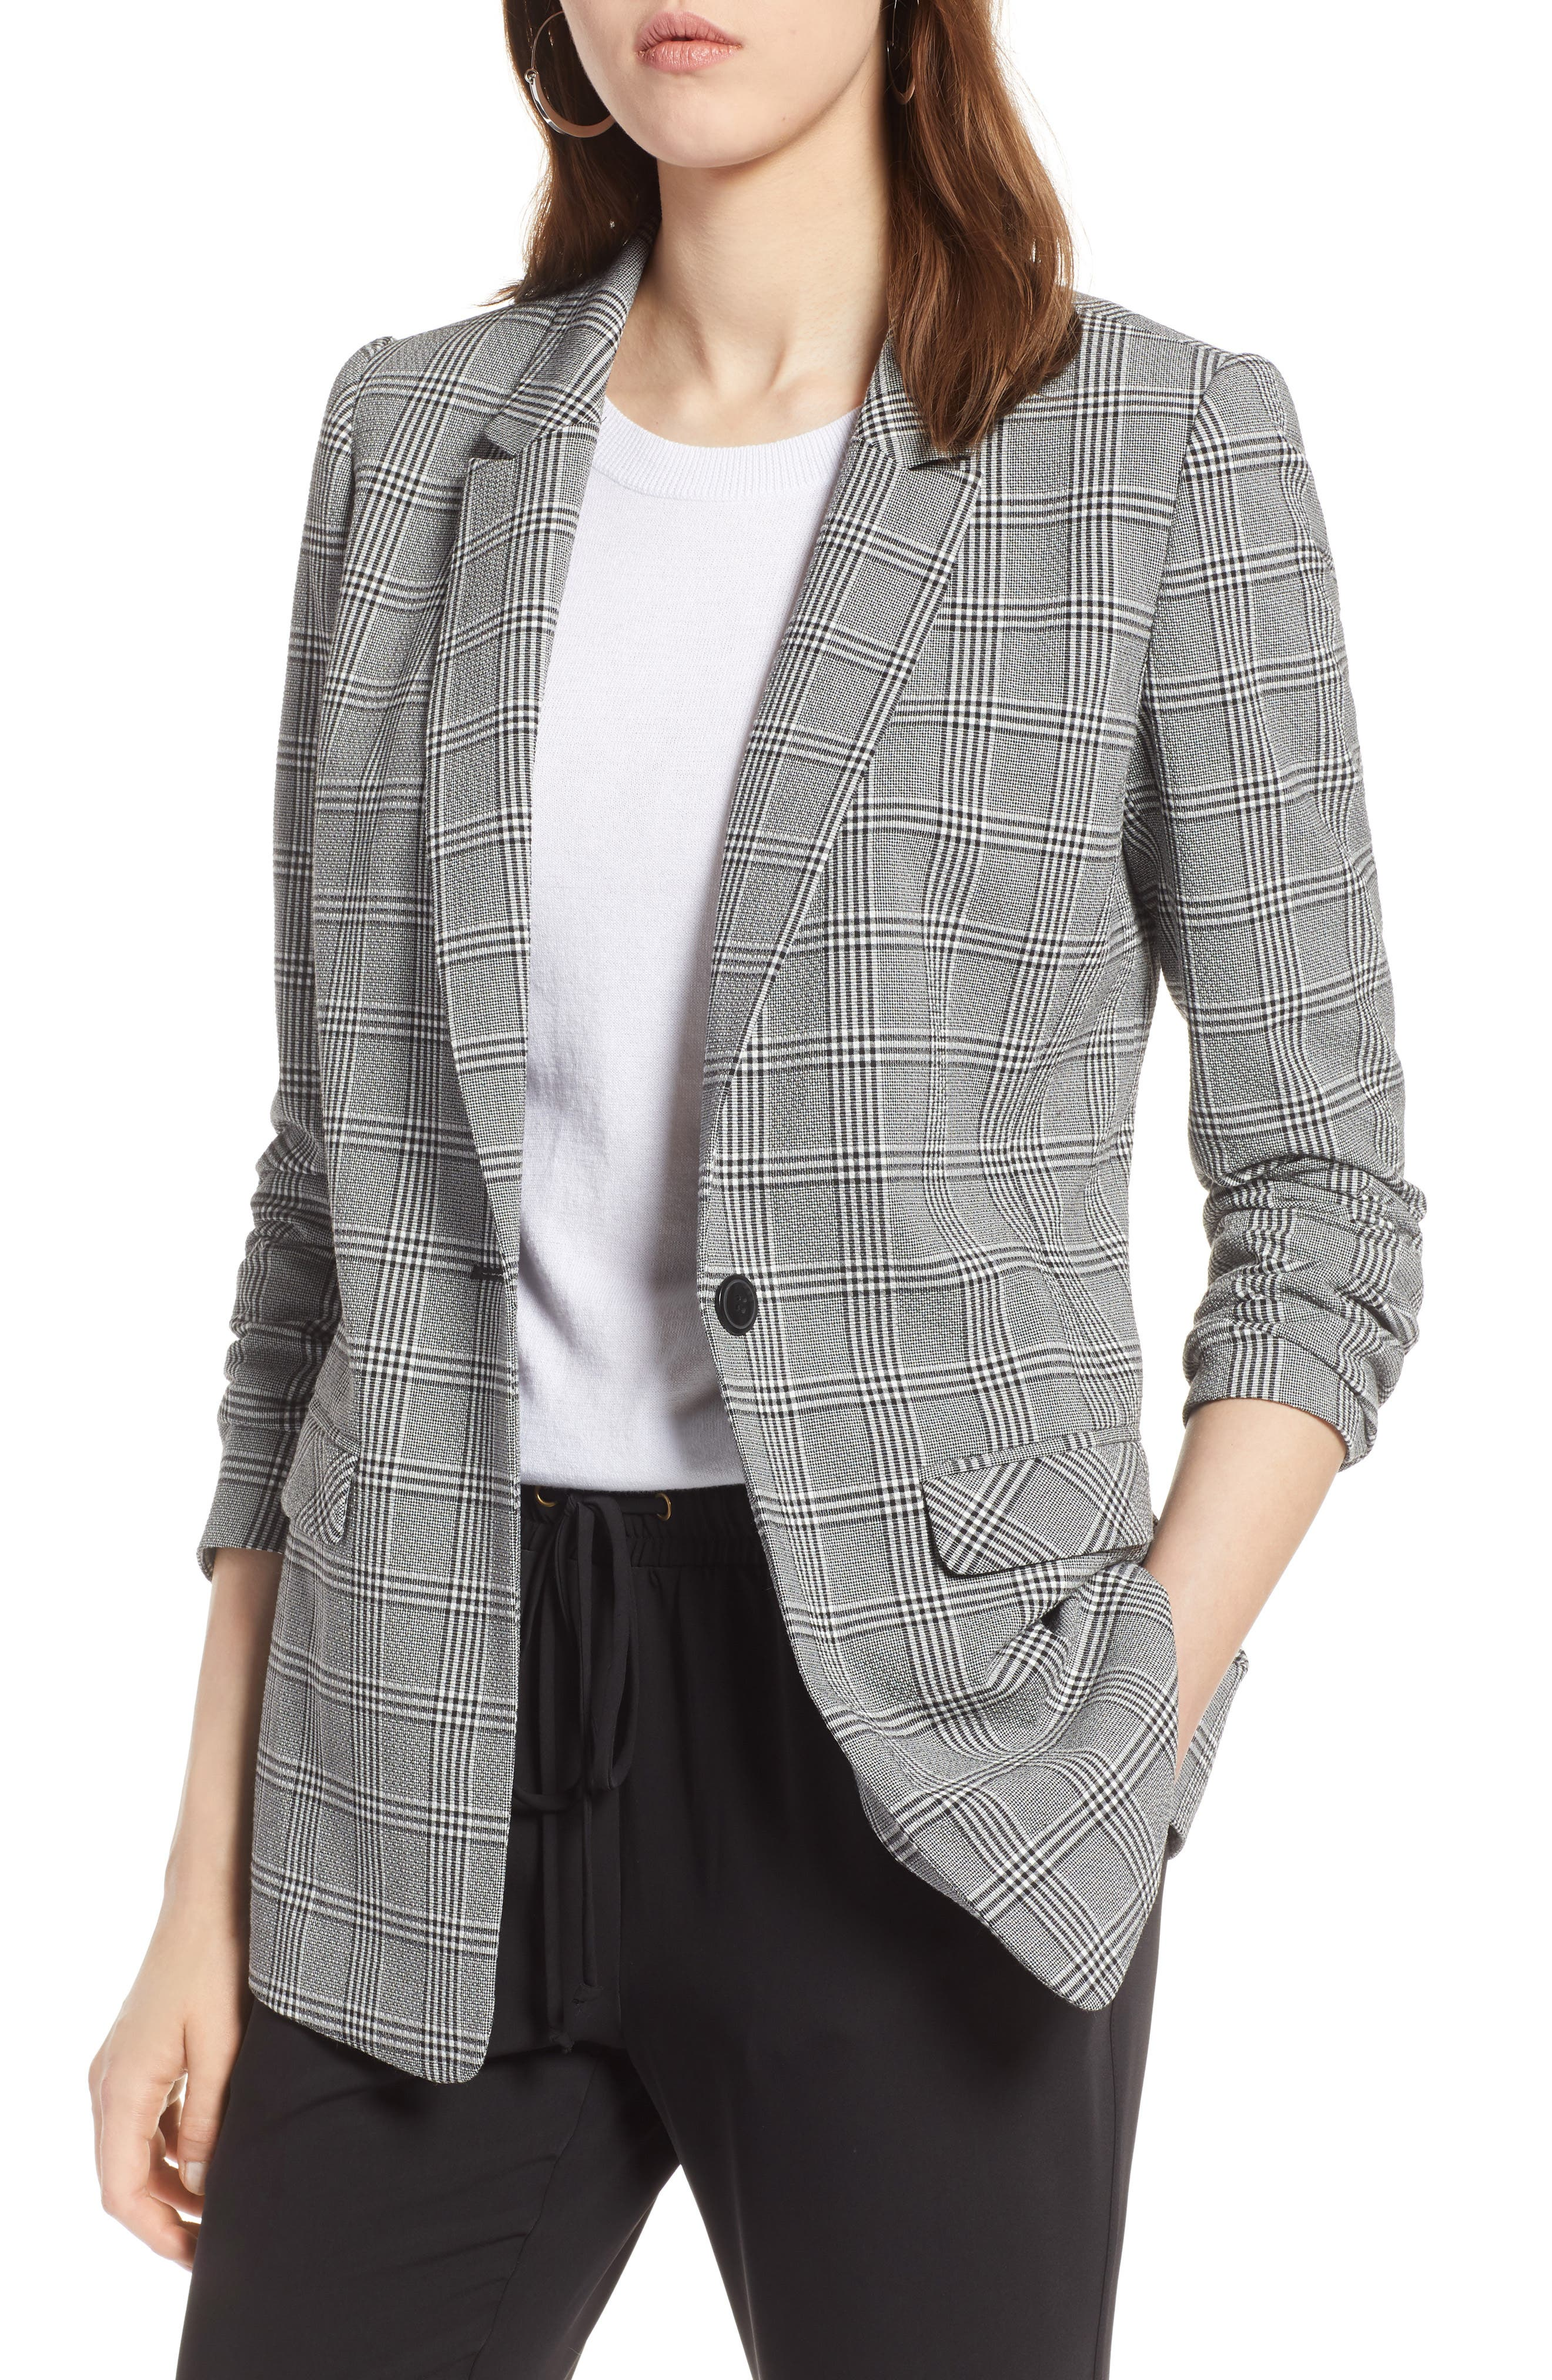 Glen Plaid Blazer,                             Main thumbnail 1, color,                             Black- White Glen Check